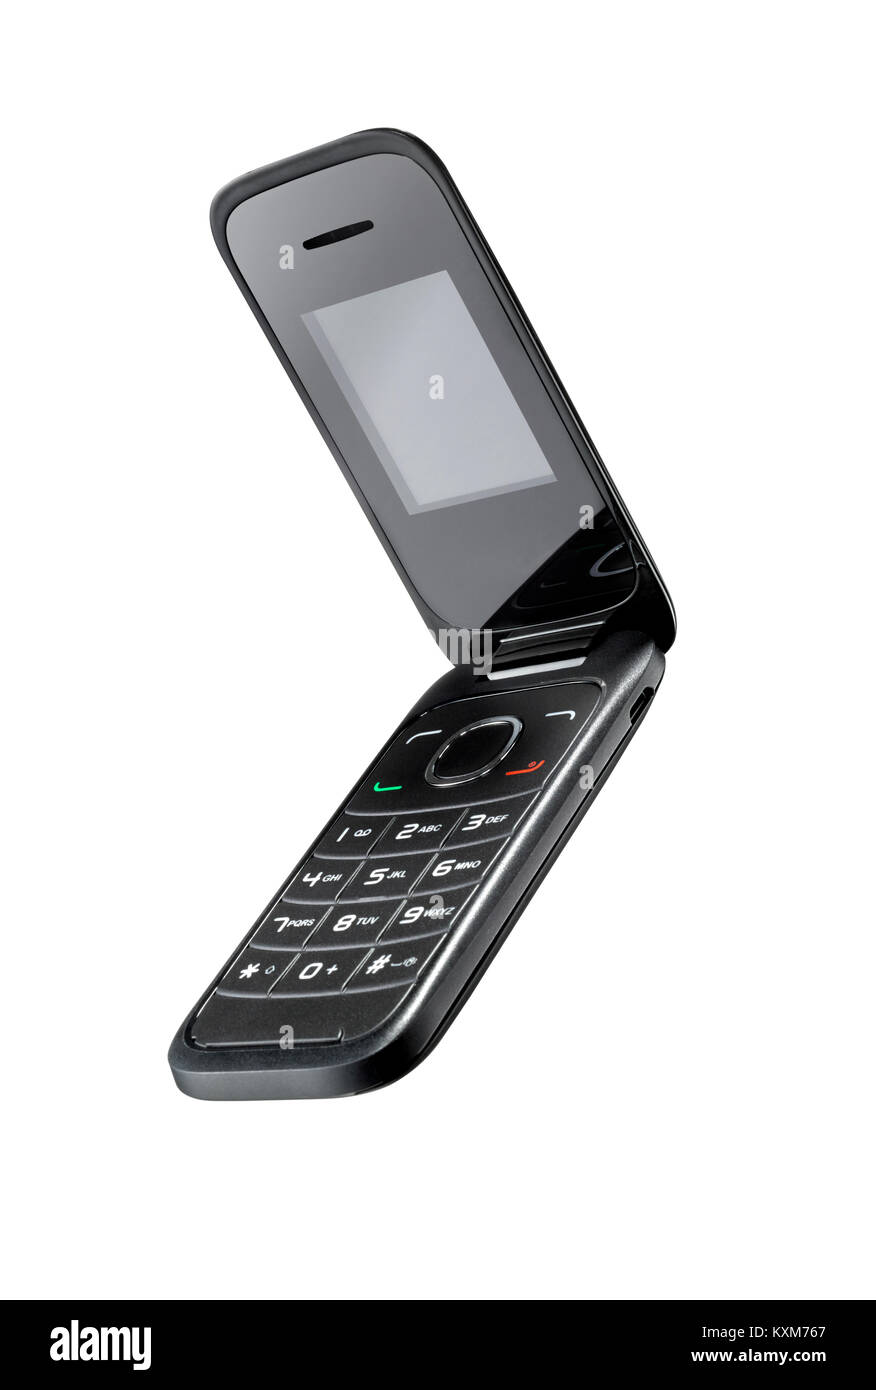 A cut out shot of a flip style phone. - Stock Image